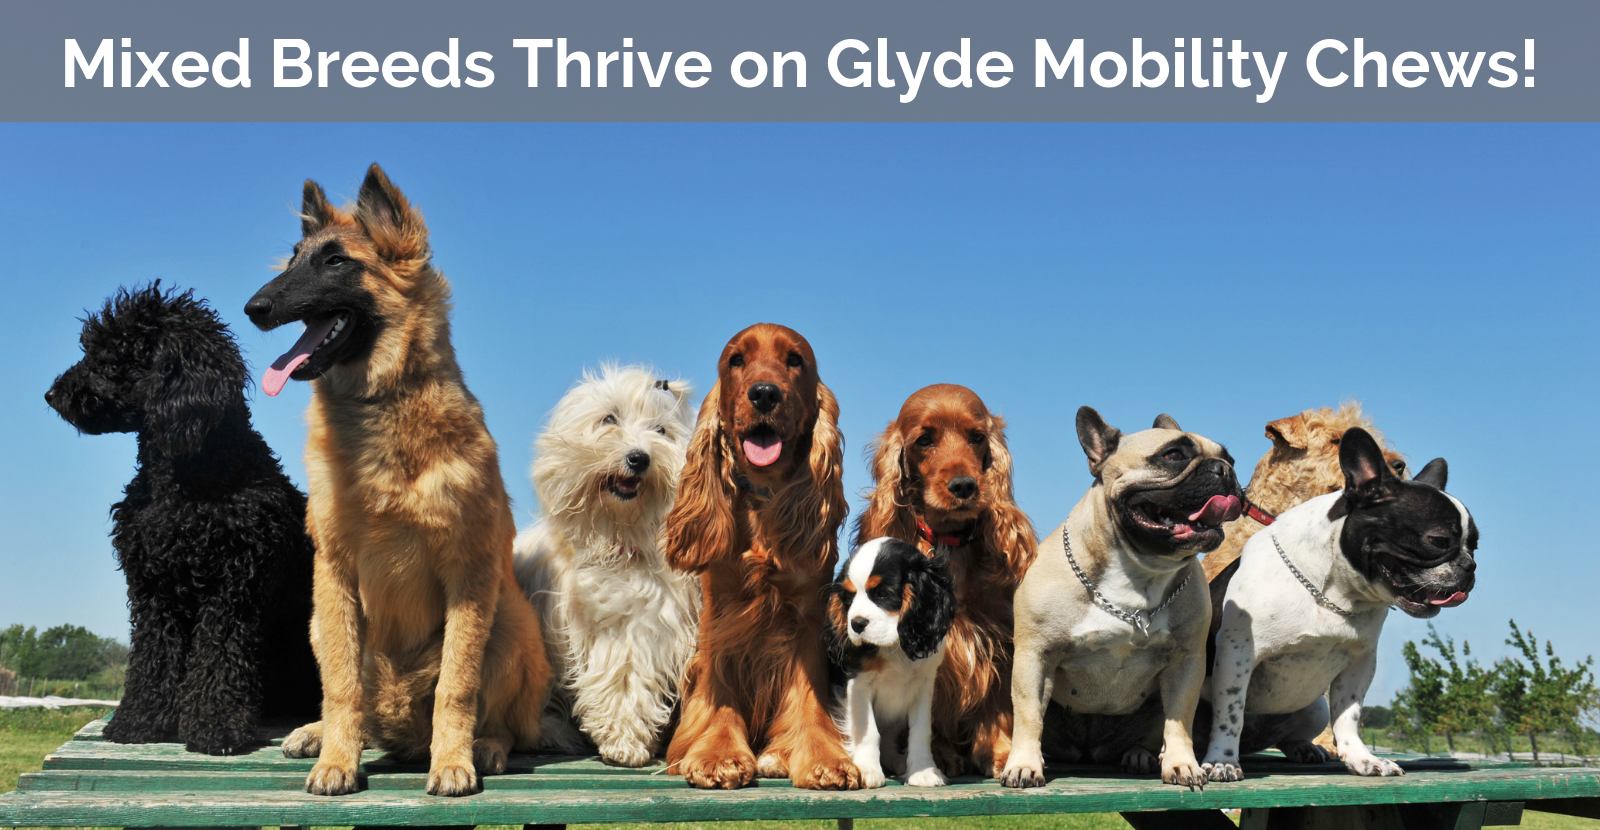 Mixed Breeds thrive on Glyde!